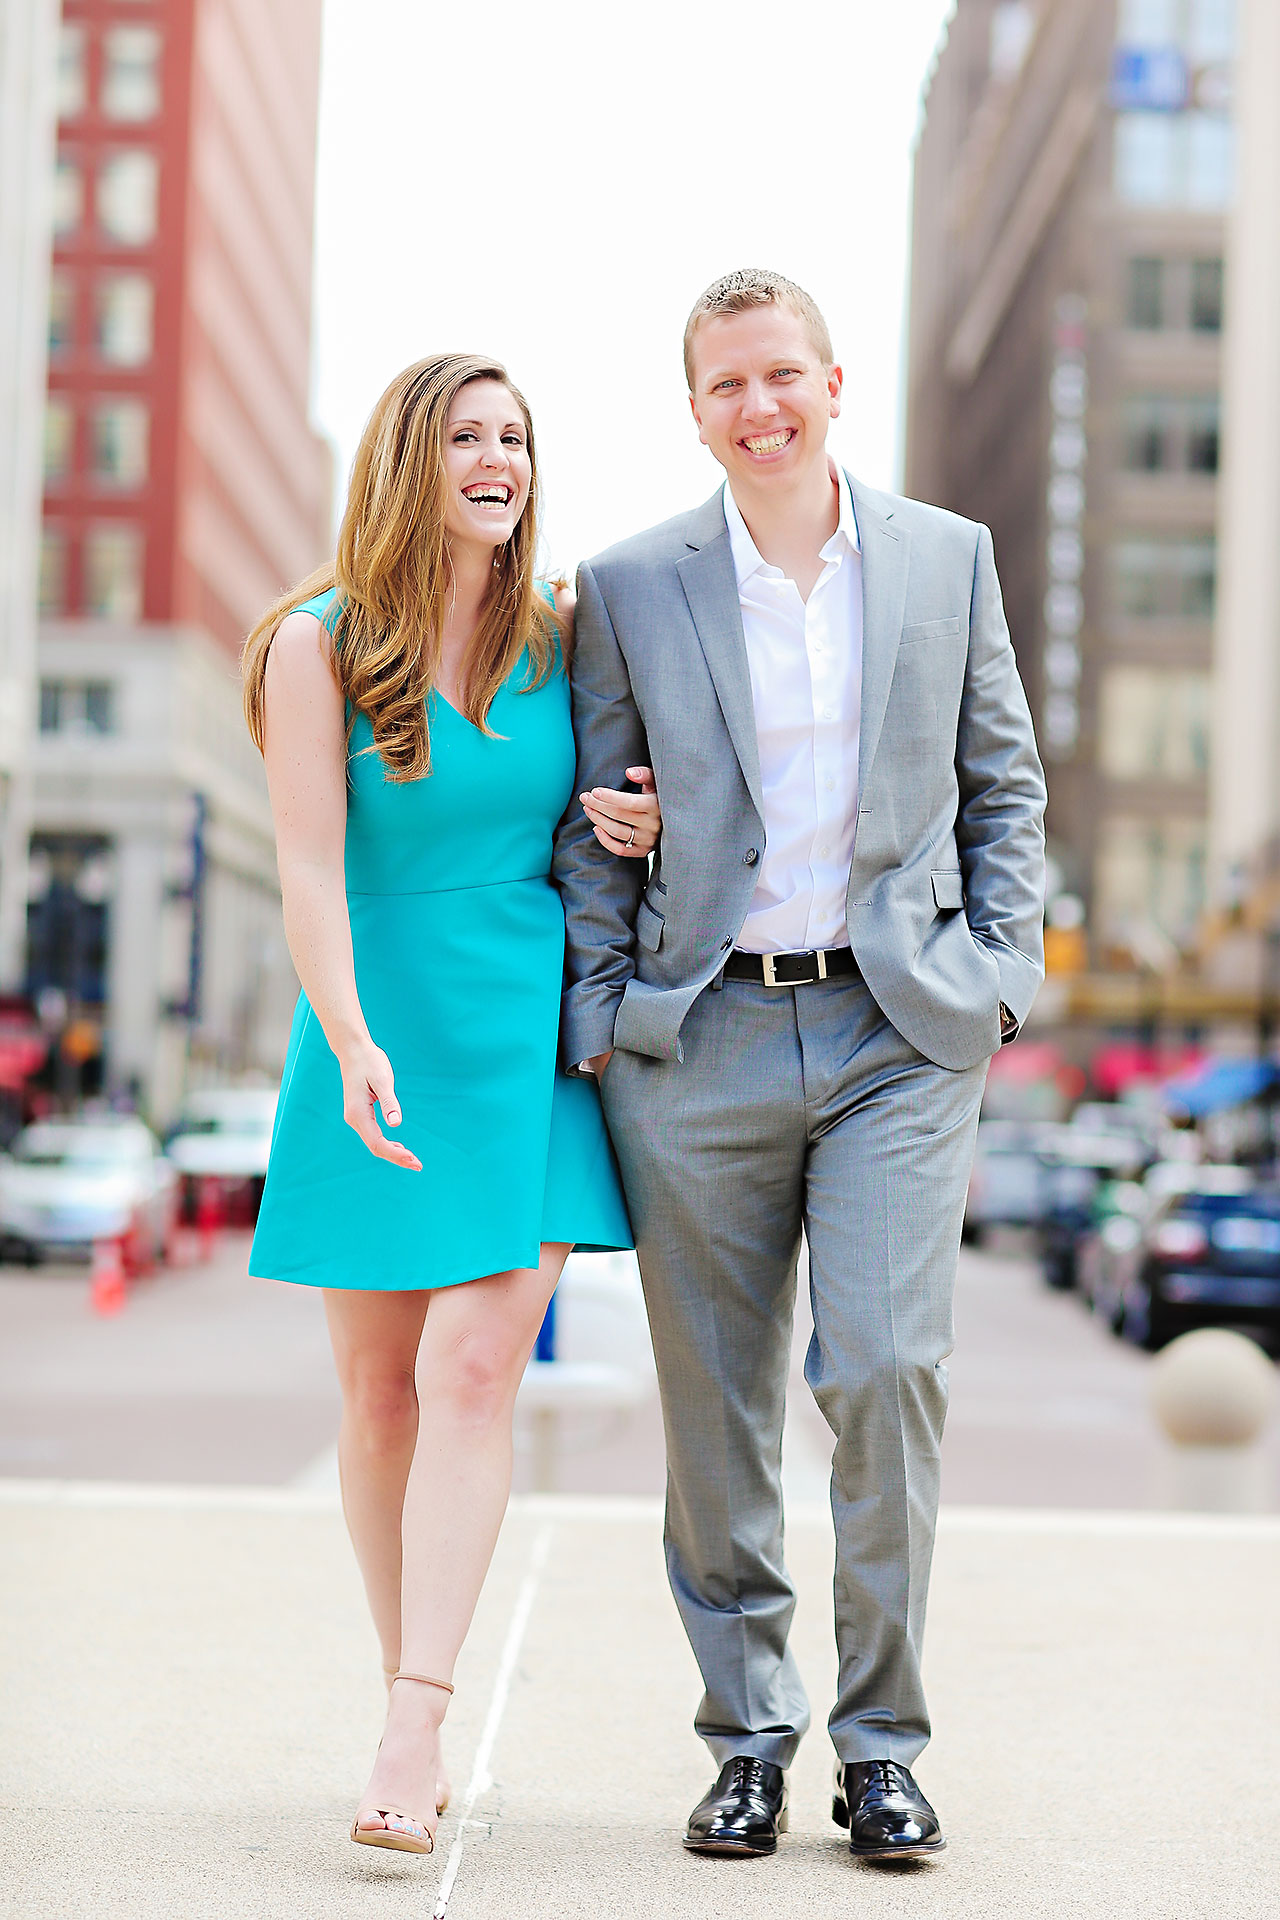 Chelsea Jeff Downtown Indy Engagement Session 114